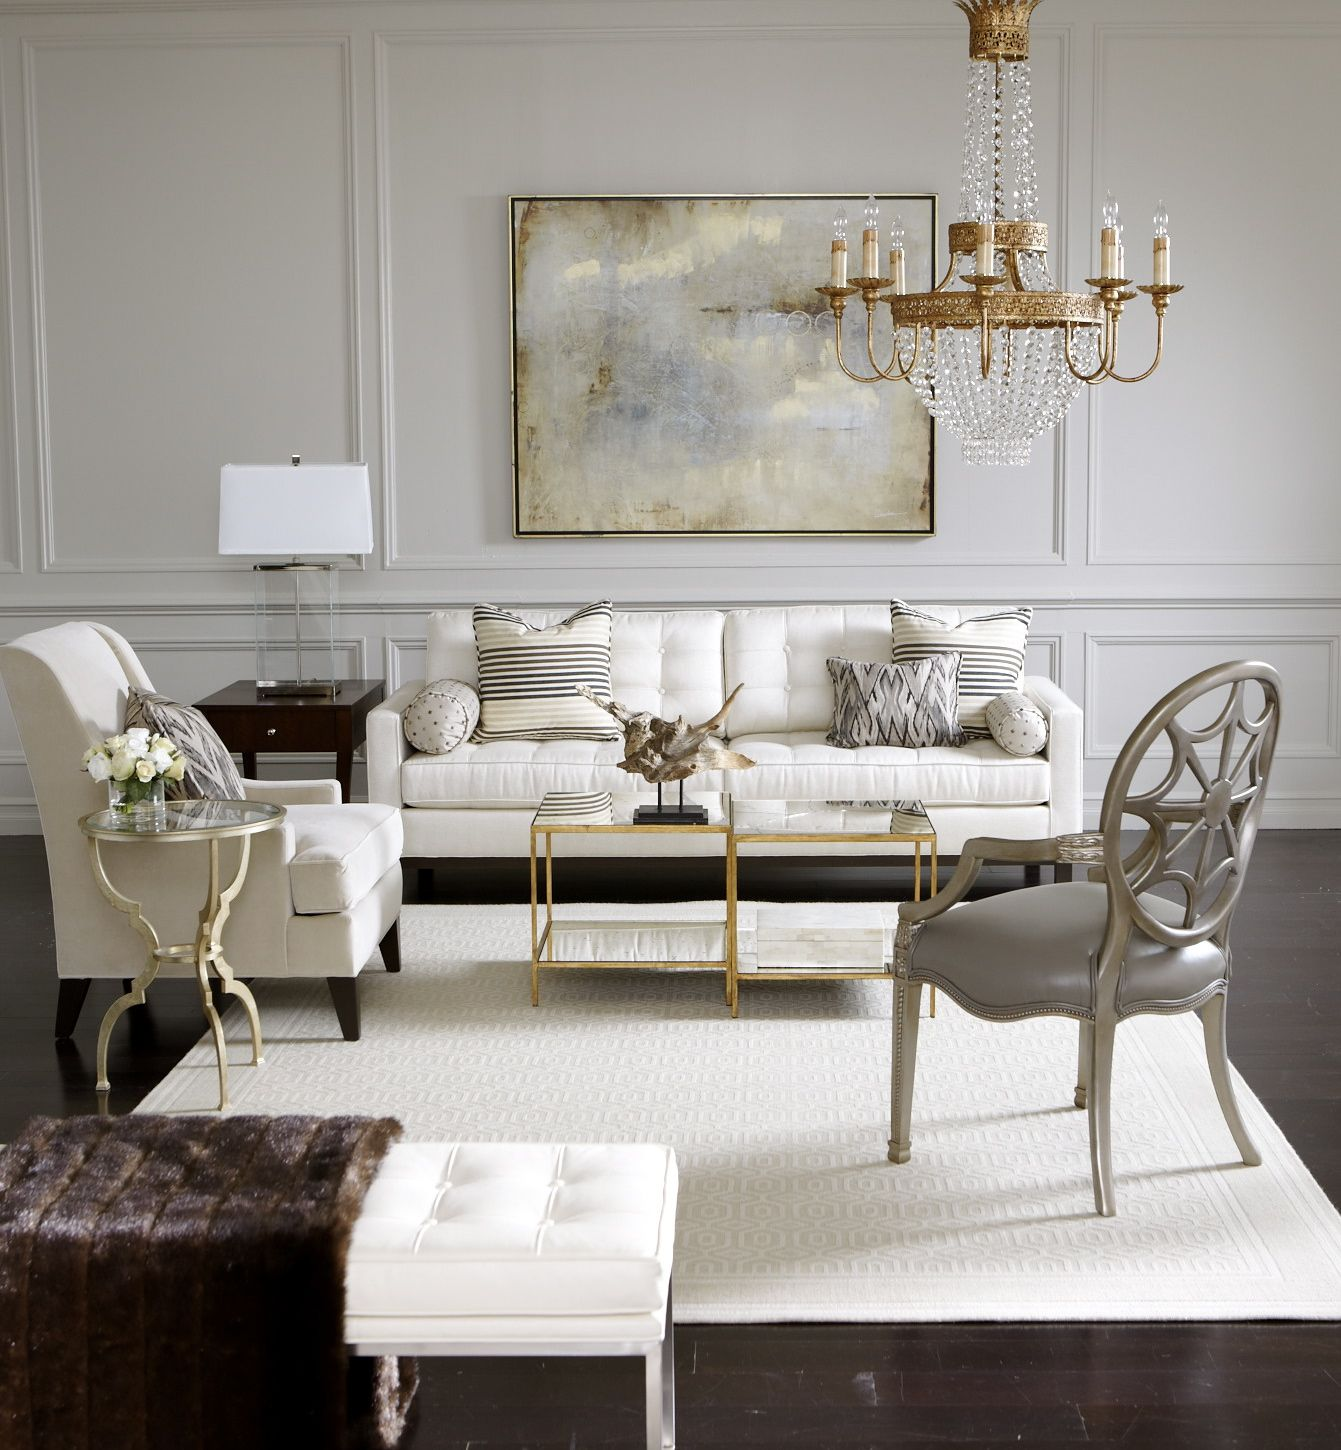 Ethan Allen Jordan Bunching Coffee Table: How To Arrange Furniture In A Small Living Room